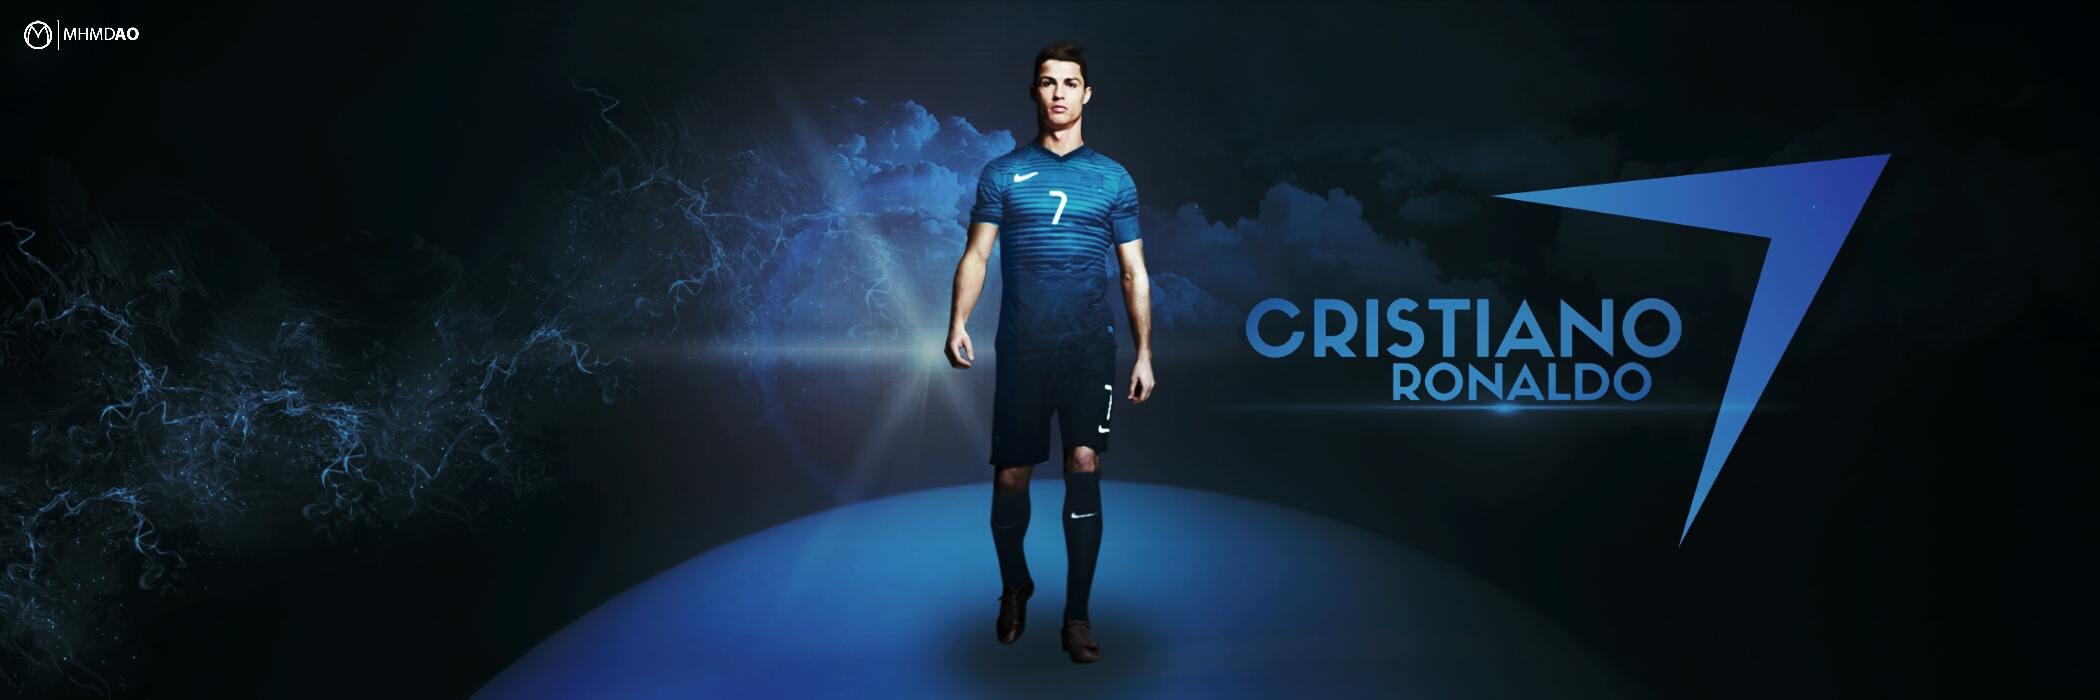 10 most popular cristiano ronaldo wallpaper 2016 full hd 1080p for